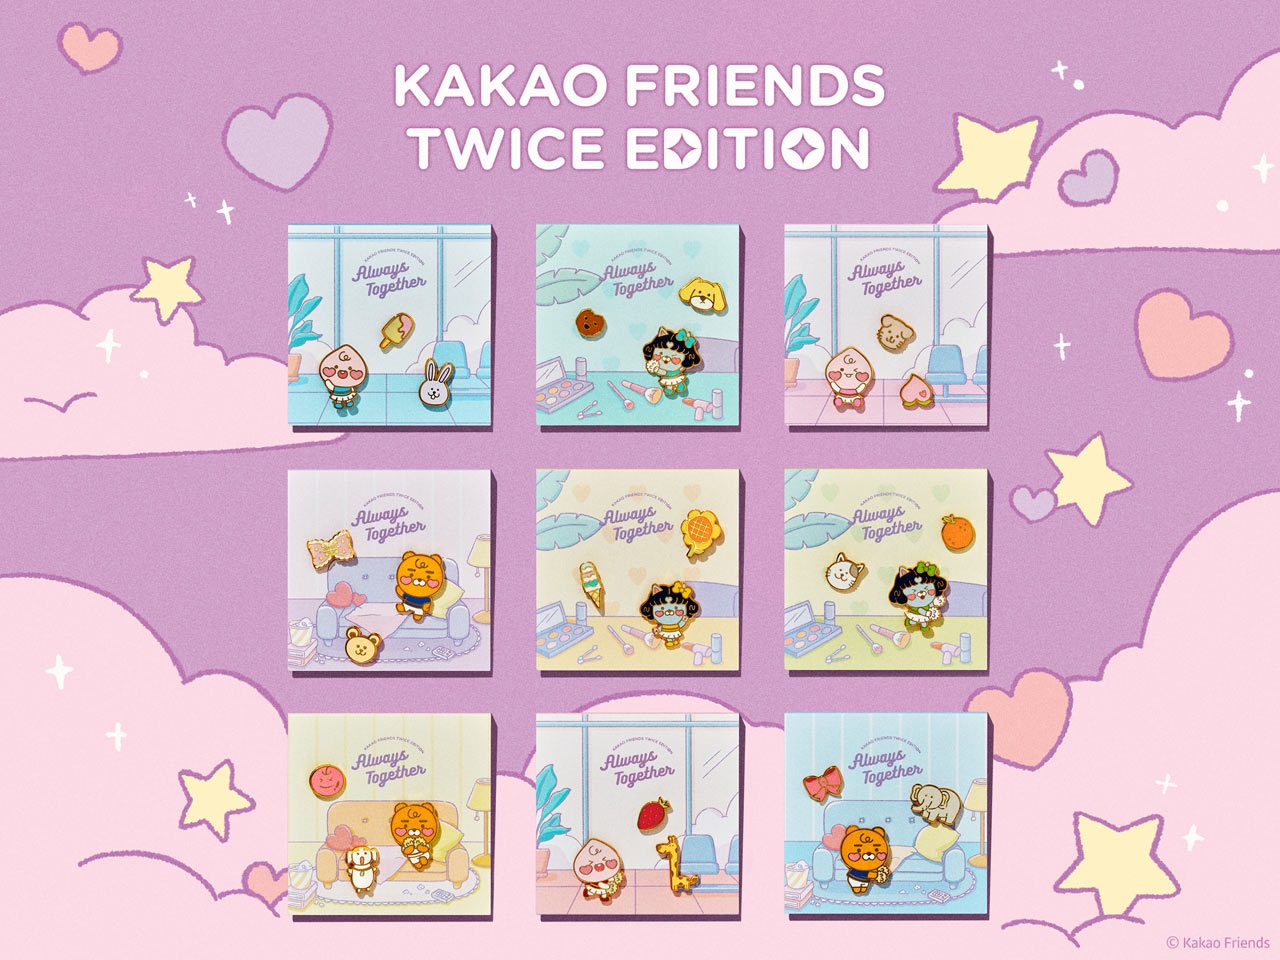 Kakao Friends TWICE Edition